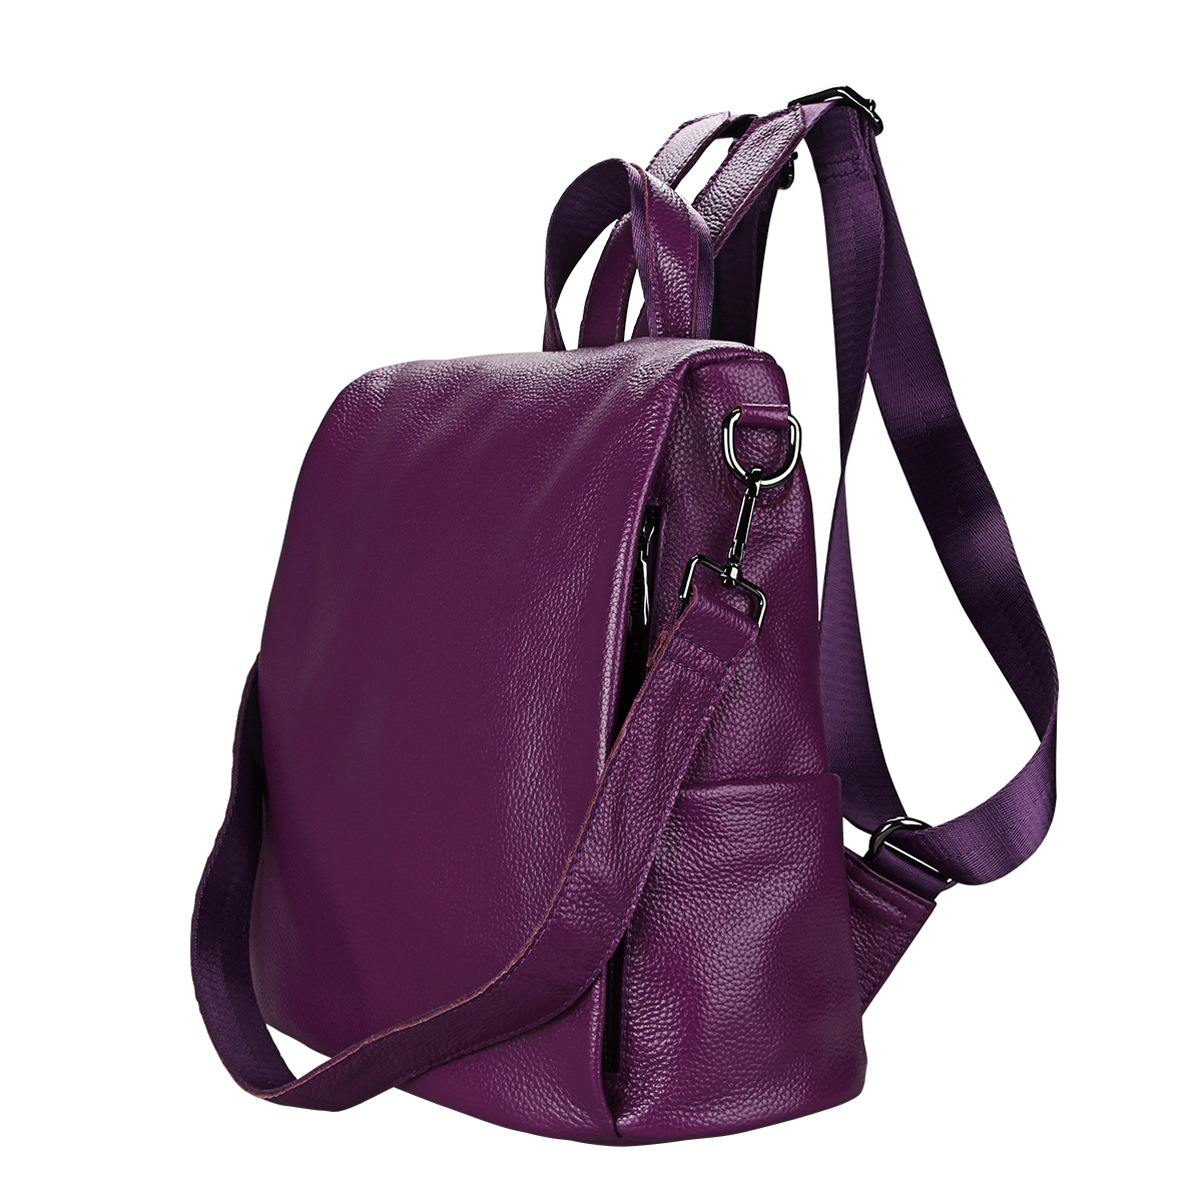 Solid Genuine Leather Teenage College Grils Backpack High Quality Women Stylish Chic Travel Backpack Female Fashion Shoulder Bag stylish solid color lightweight pleated scarf for women